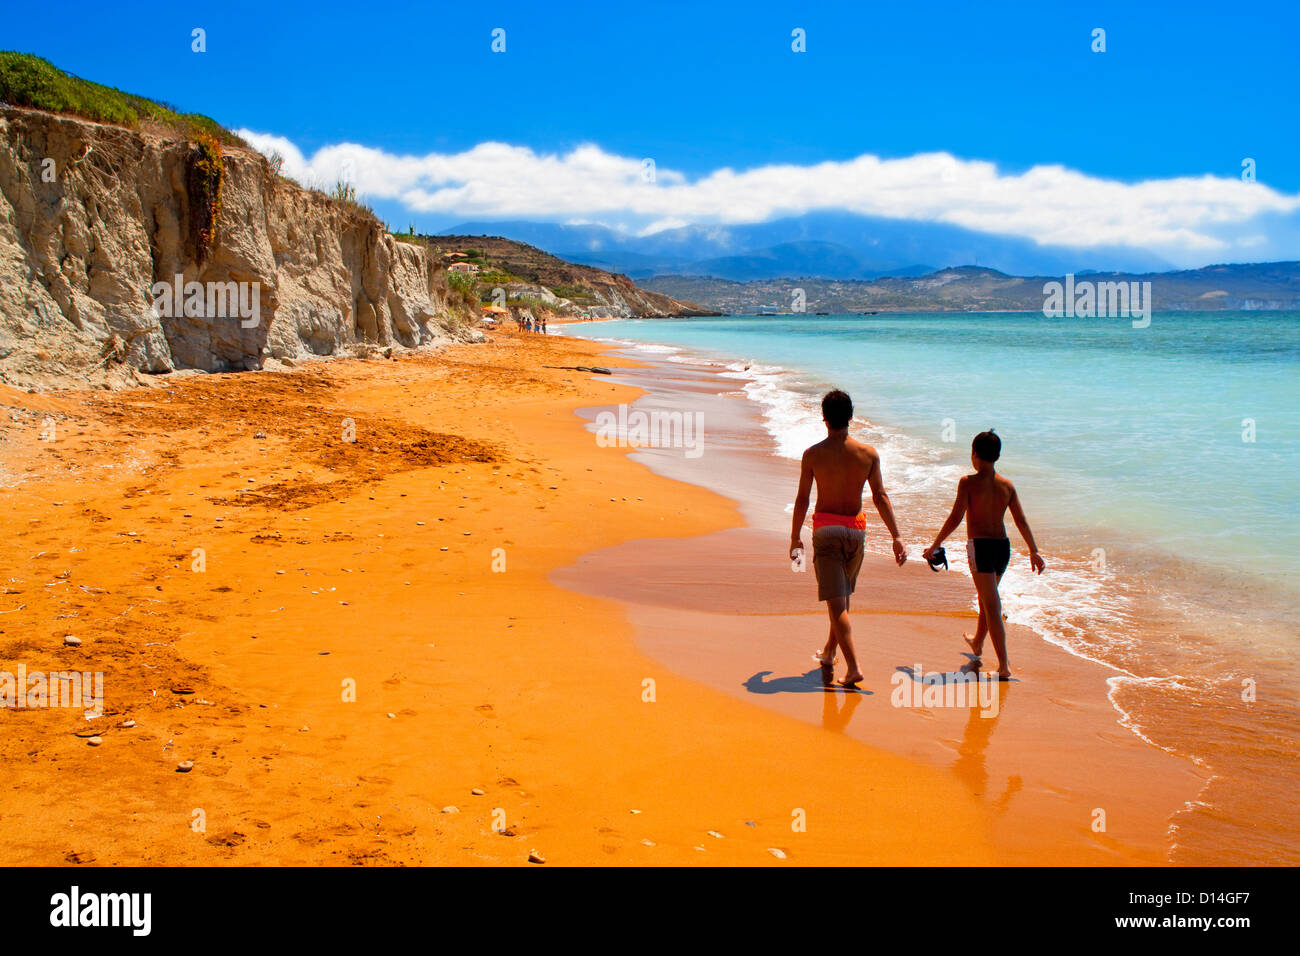 Sandy red beach at Kefalonia island in Greece - Stock Image